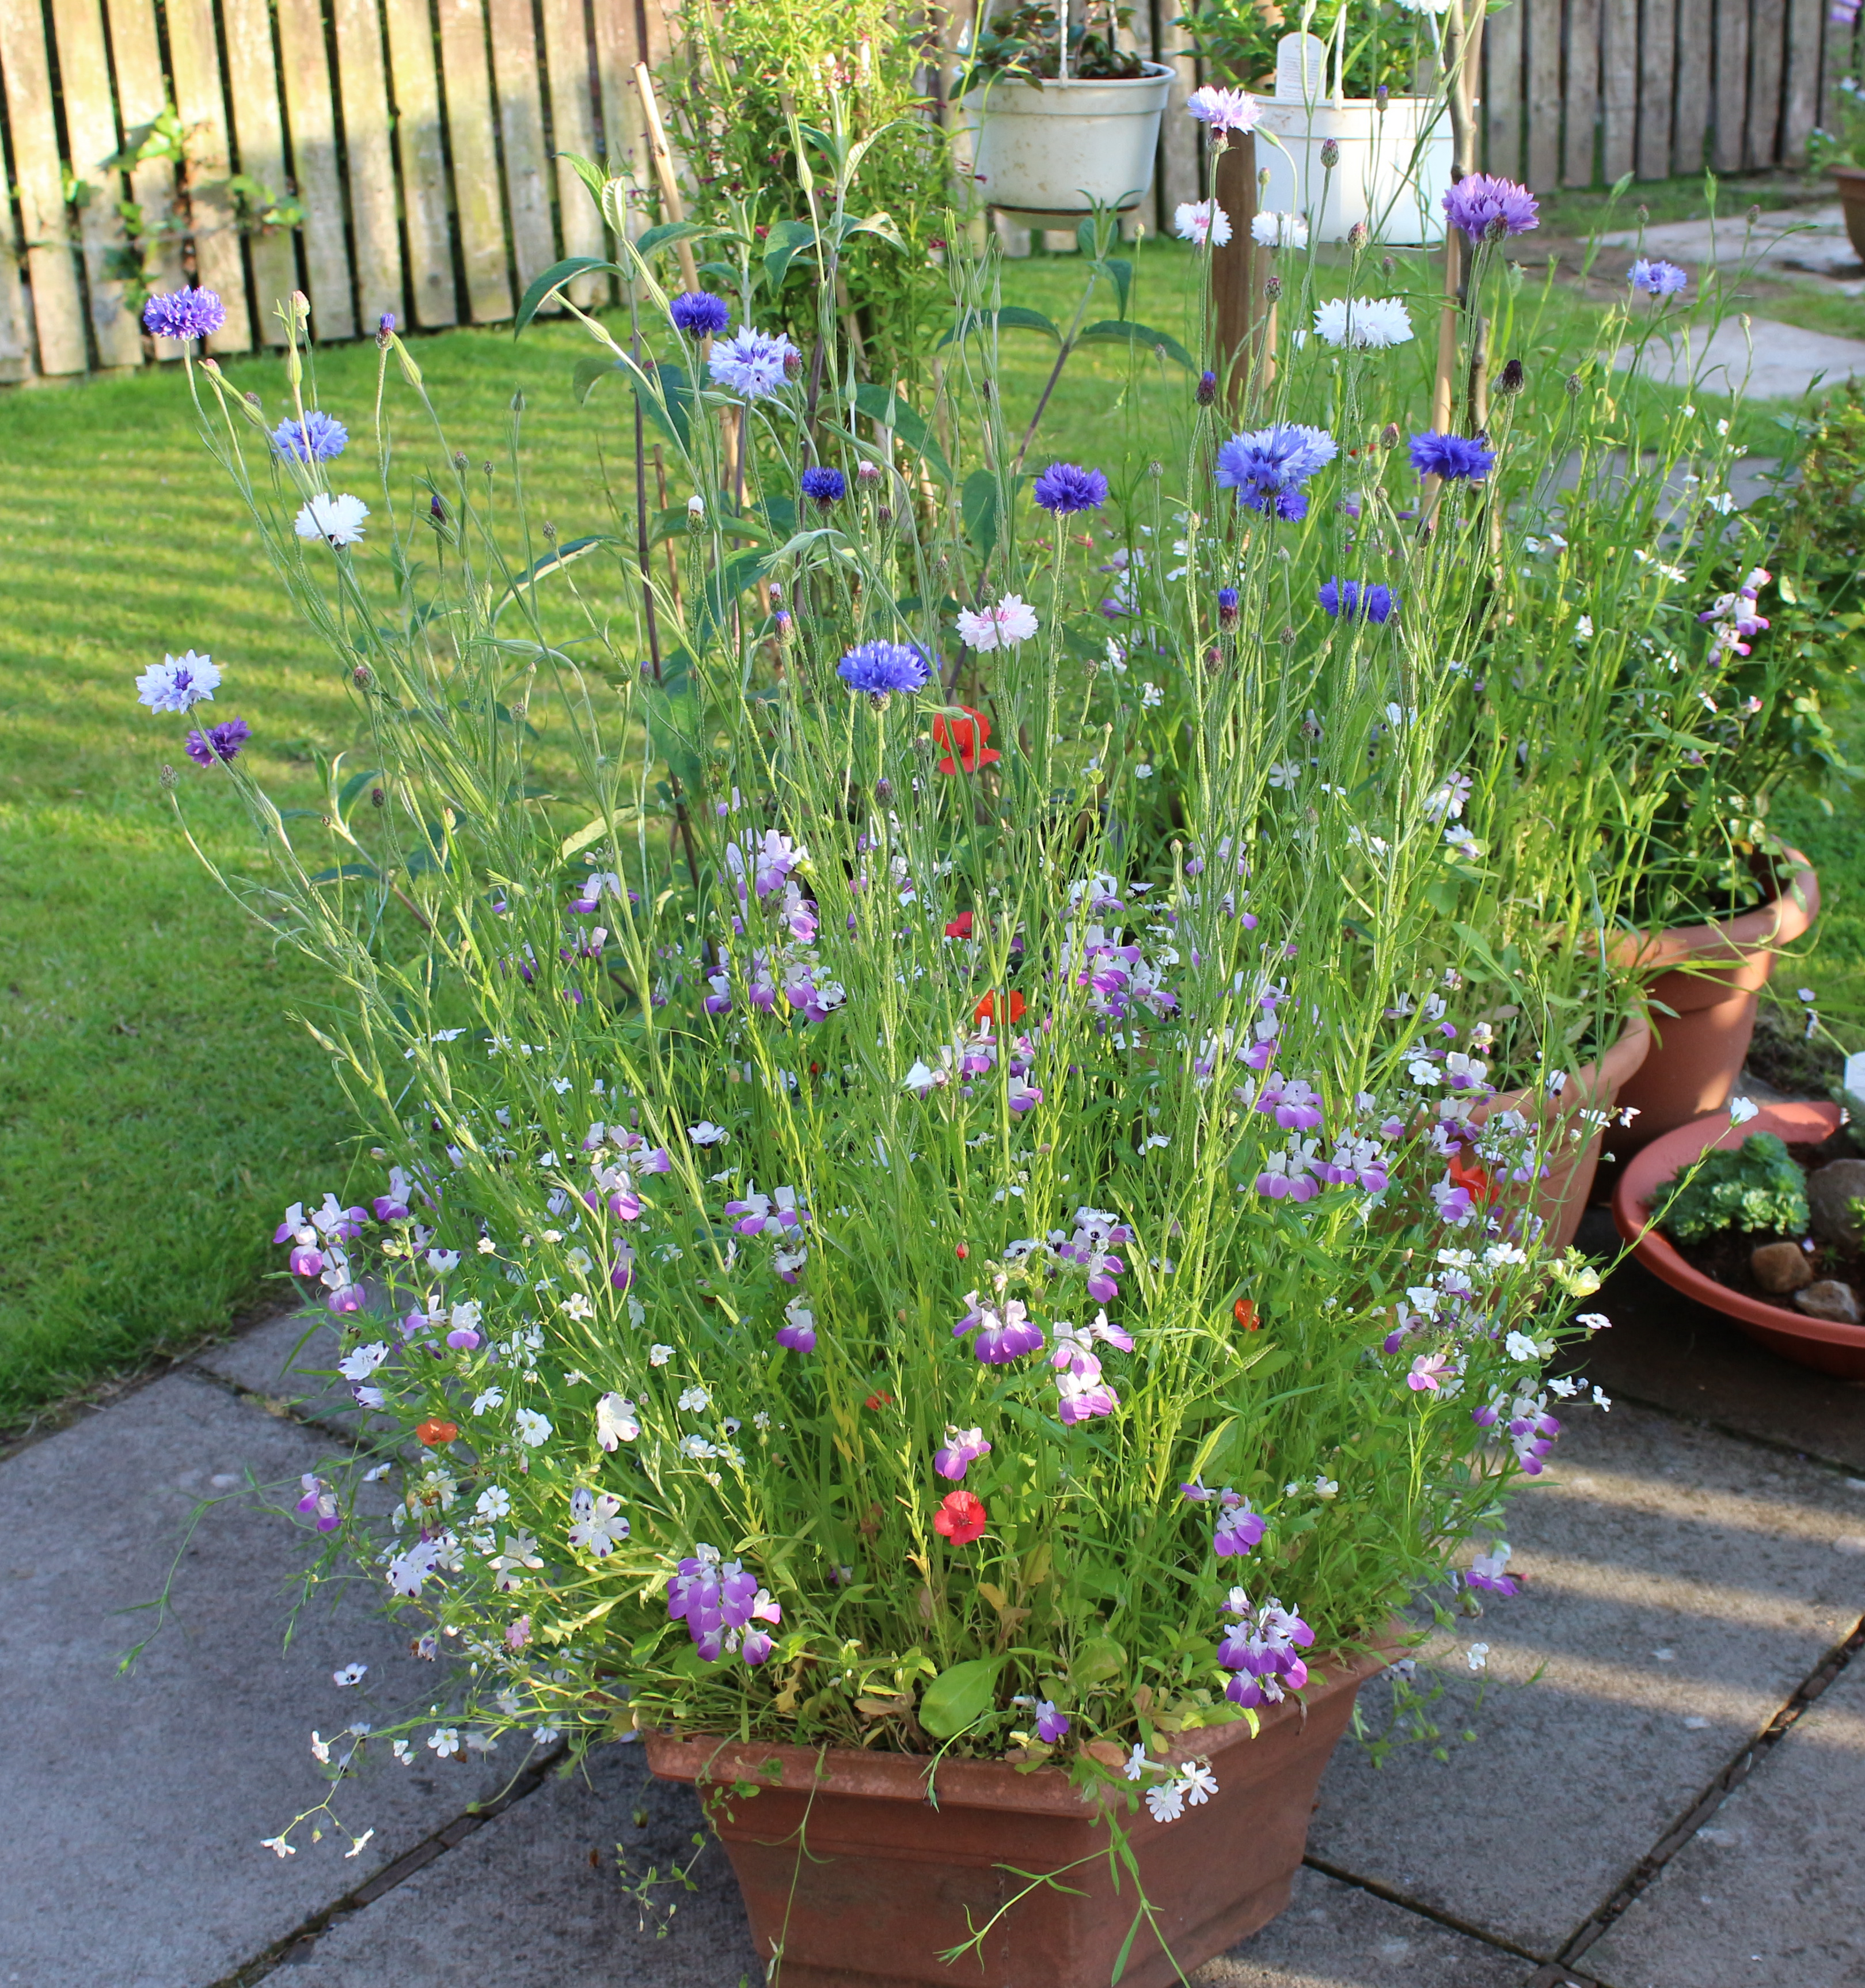 1 X Box Of Wild Flower Seeds, 1 Old Tub, Garden Soil, Add Water And .